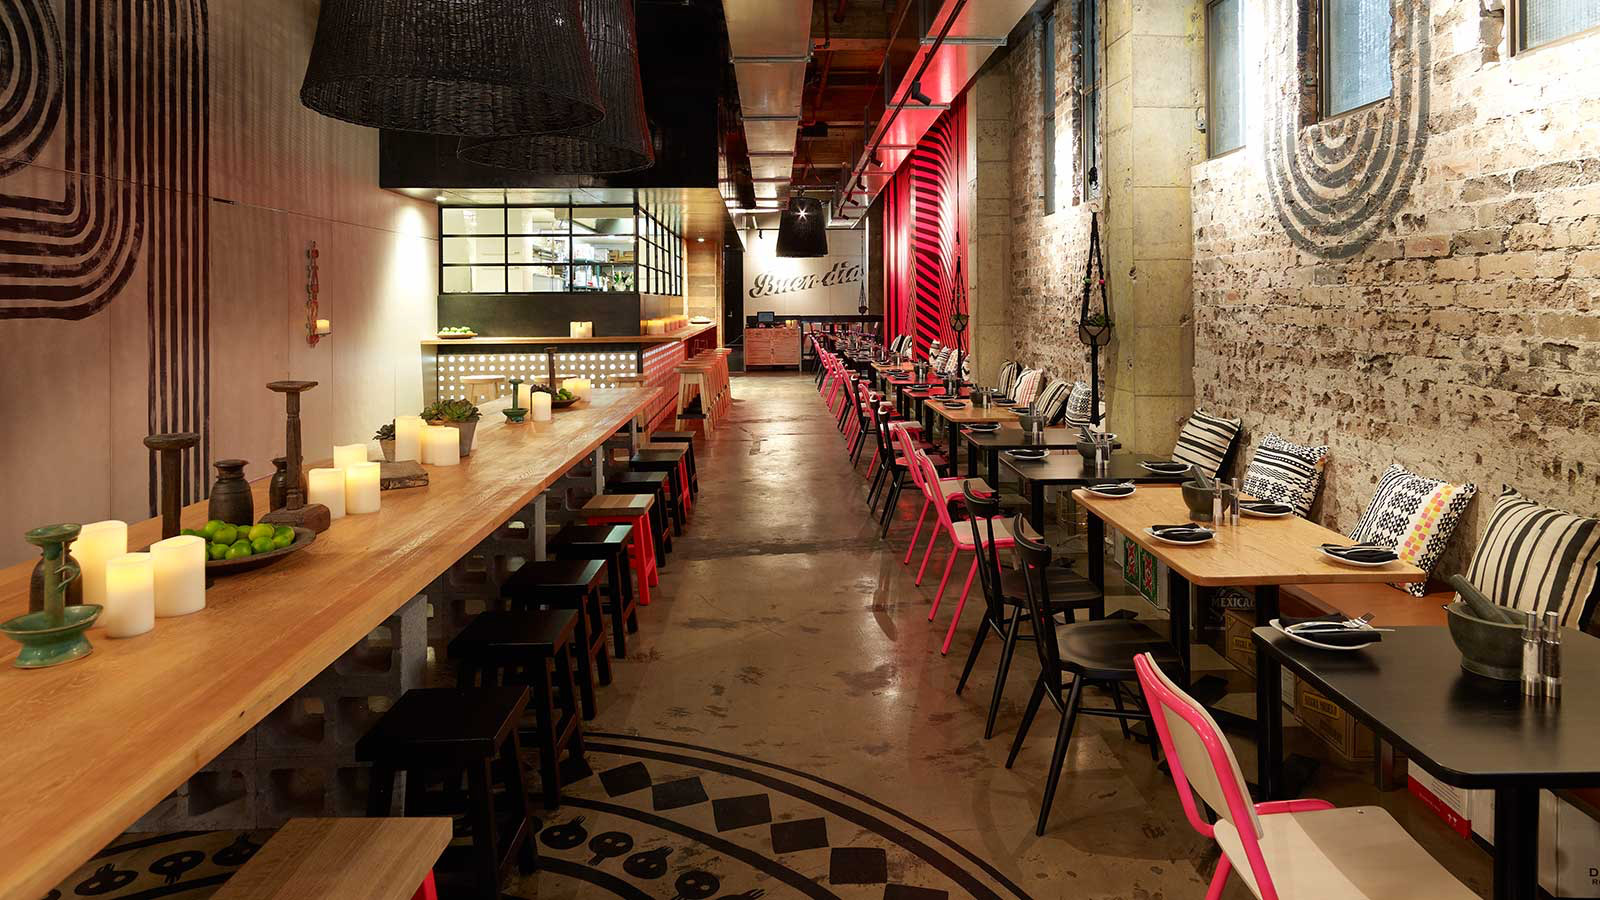 Environmental Graphics for Méjico Restaurant & Bar. Designed by Juicy Design / www.enviromeant.com